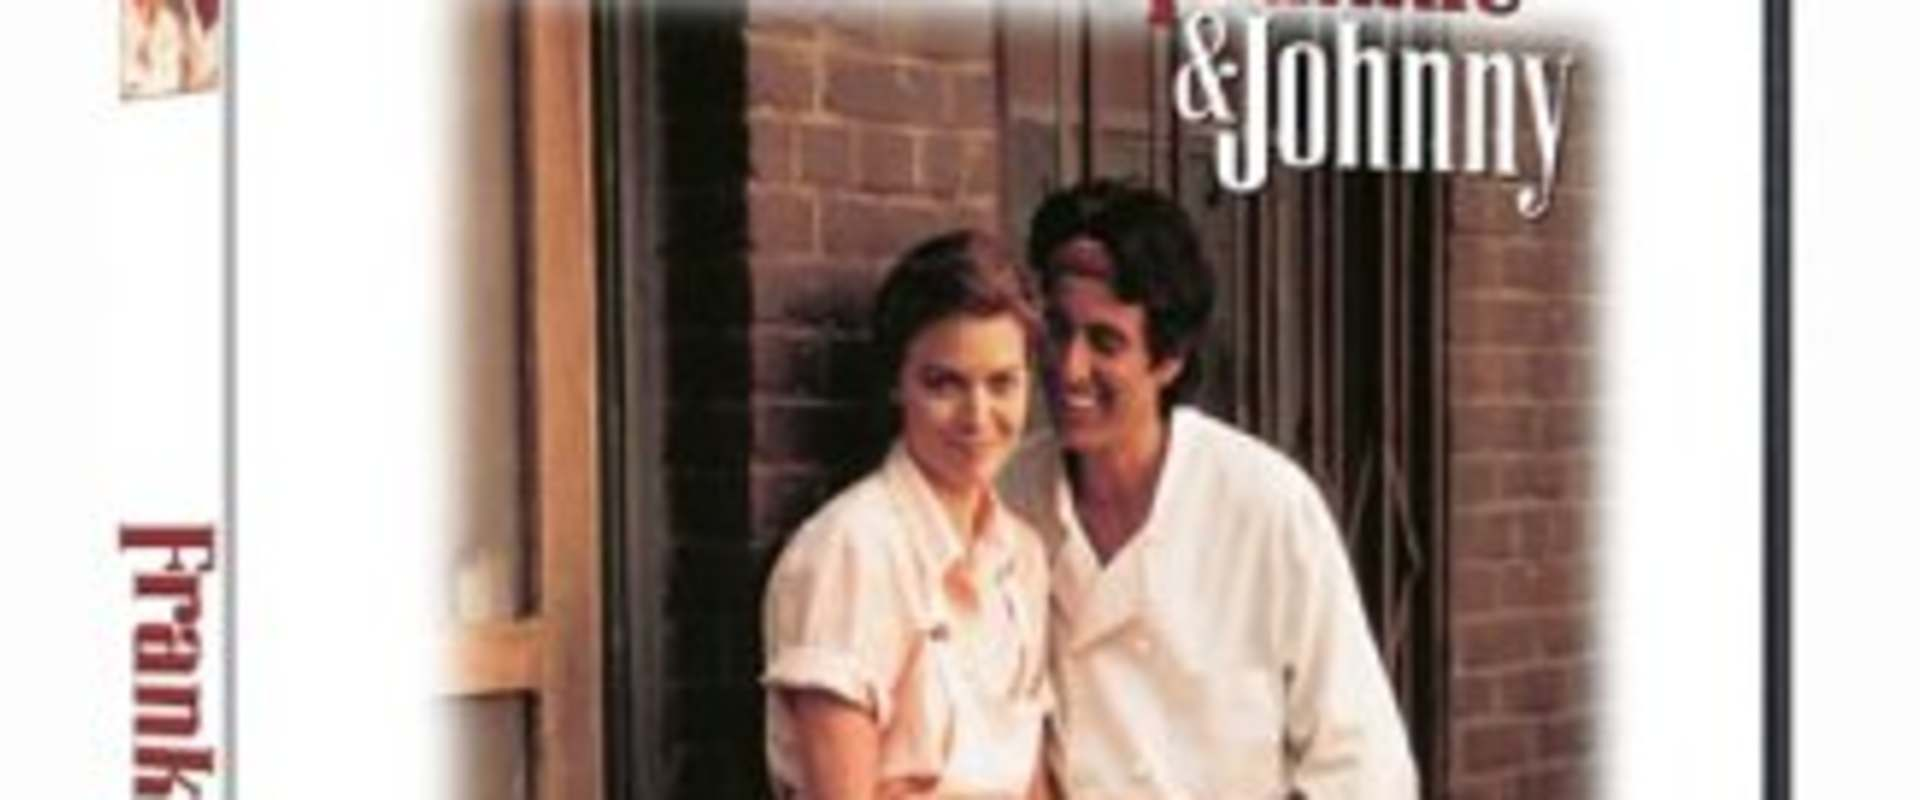 Frankie and Johnny background 2